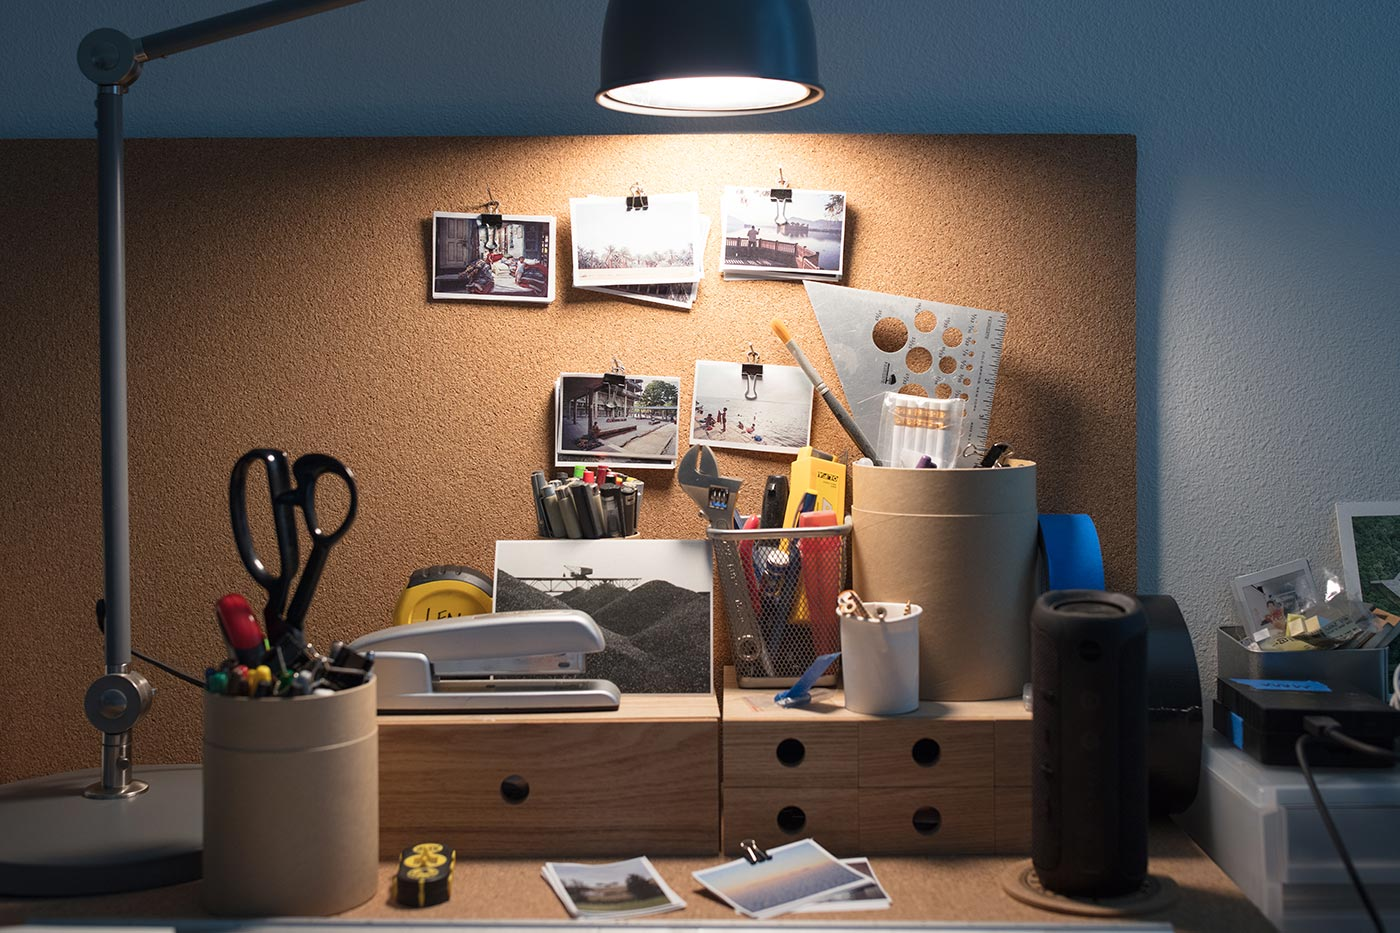 Architectural photos and tools on James Leng's desk.